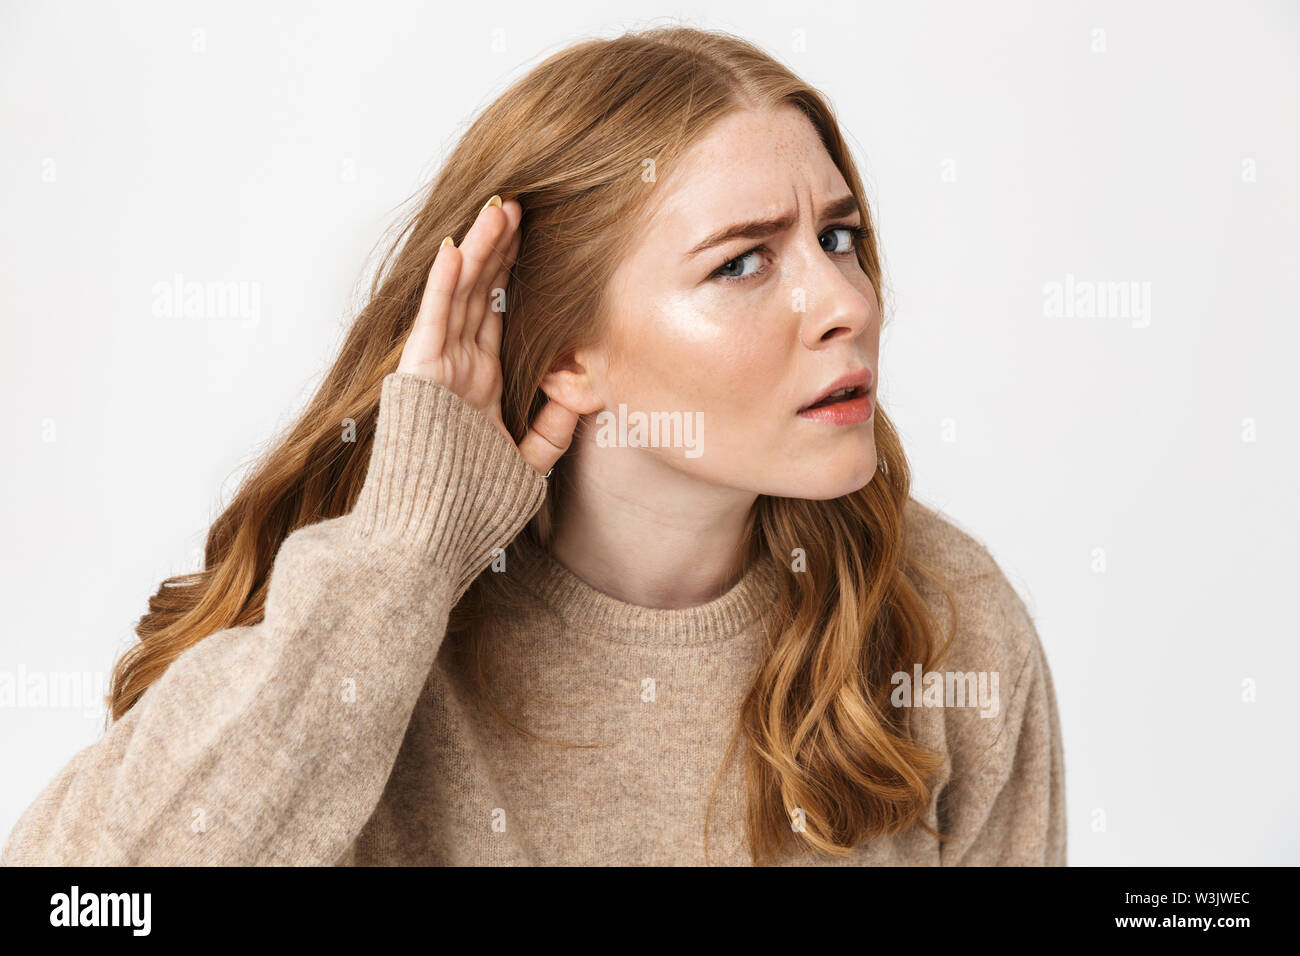 Attractive young girl wearing sweater standing isolated over white background, trying to hear rumors - Stock Image